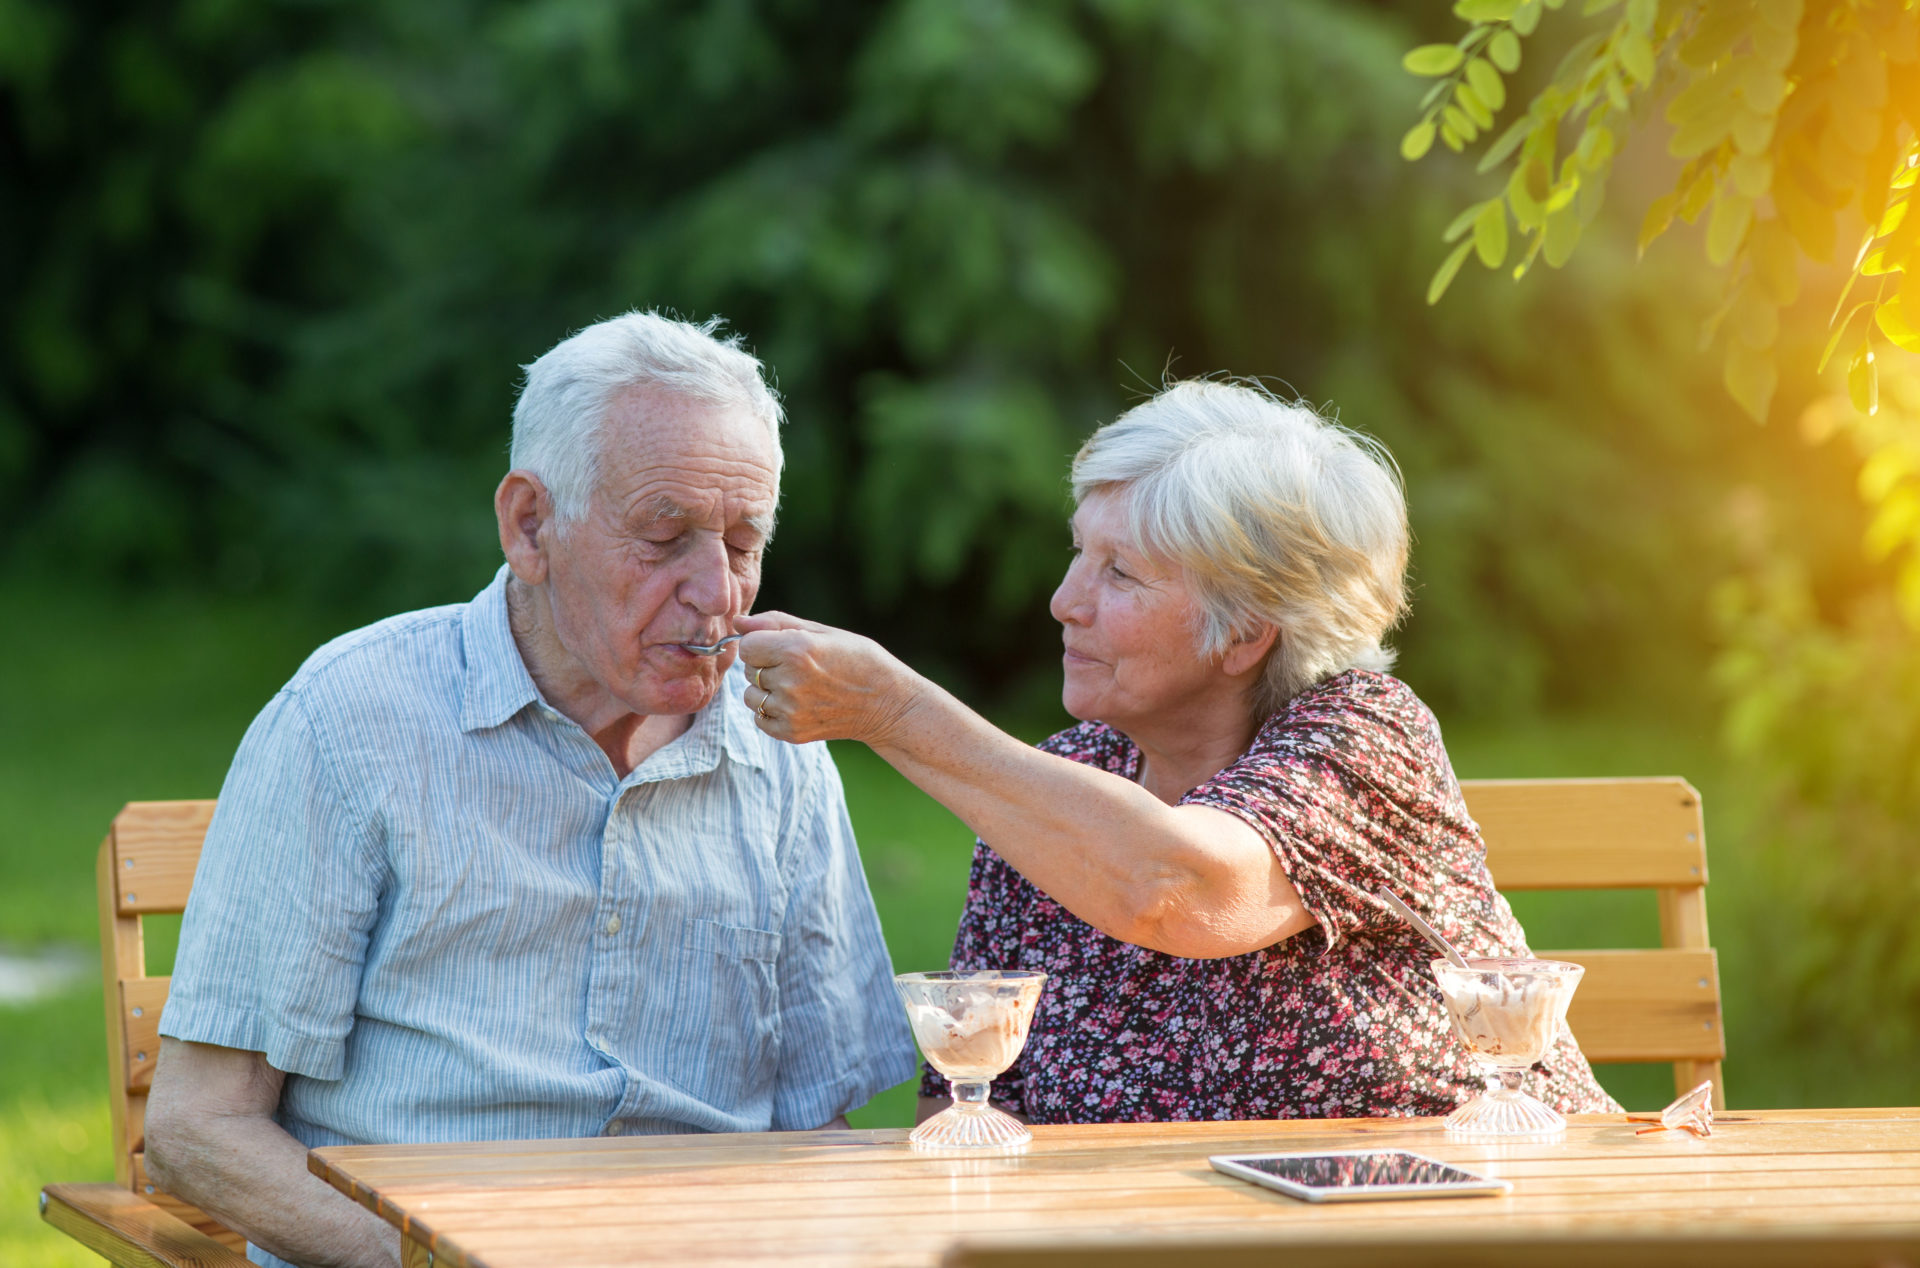 Old couple eating ice cream outside